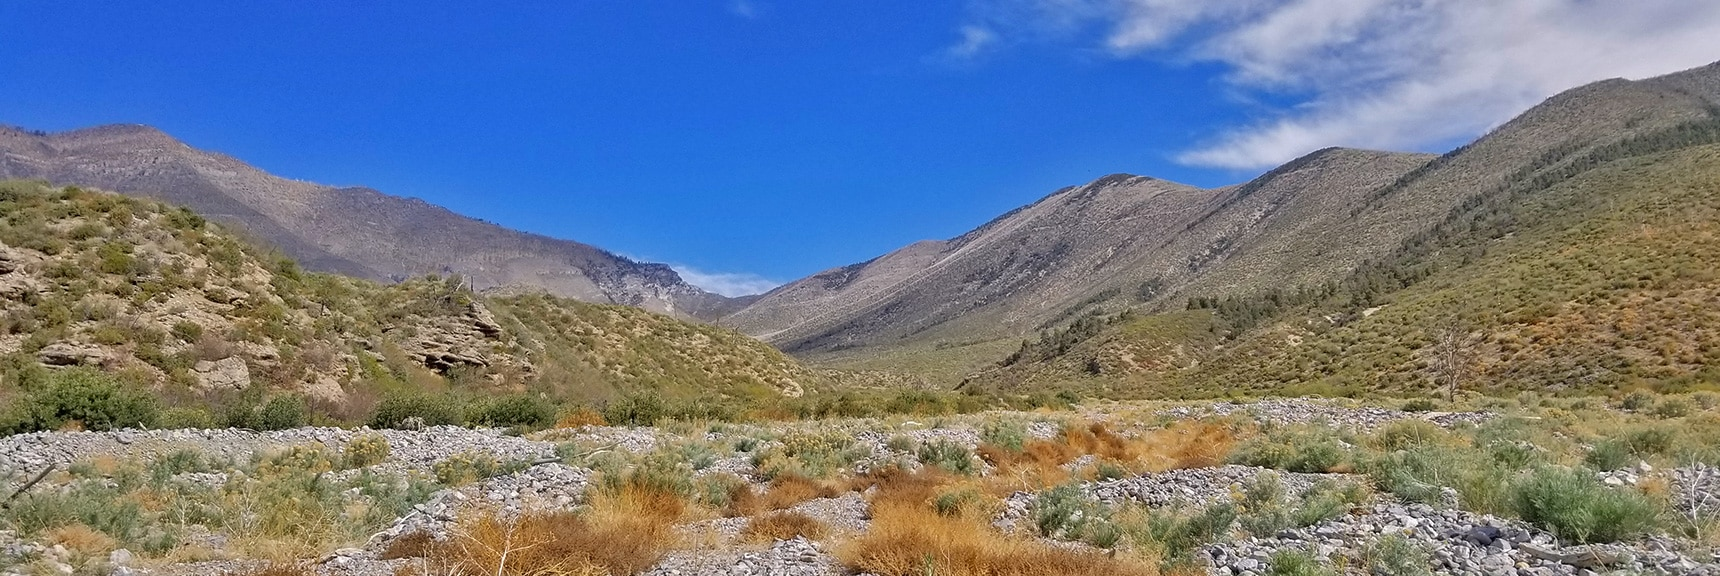 Easier Ascent as Canyon Floor Rocks Become Smaller, Less Brush | Harris Mountain from Lovell Canyon Nevada